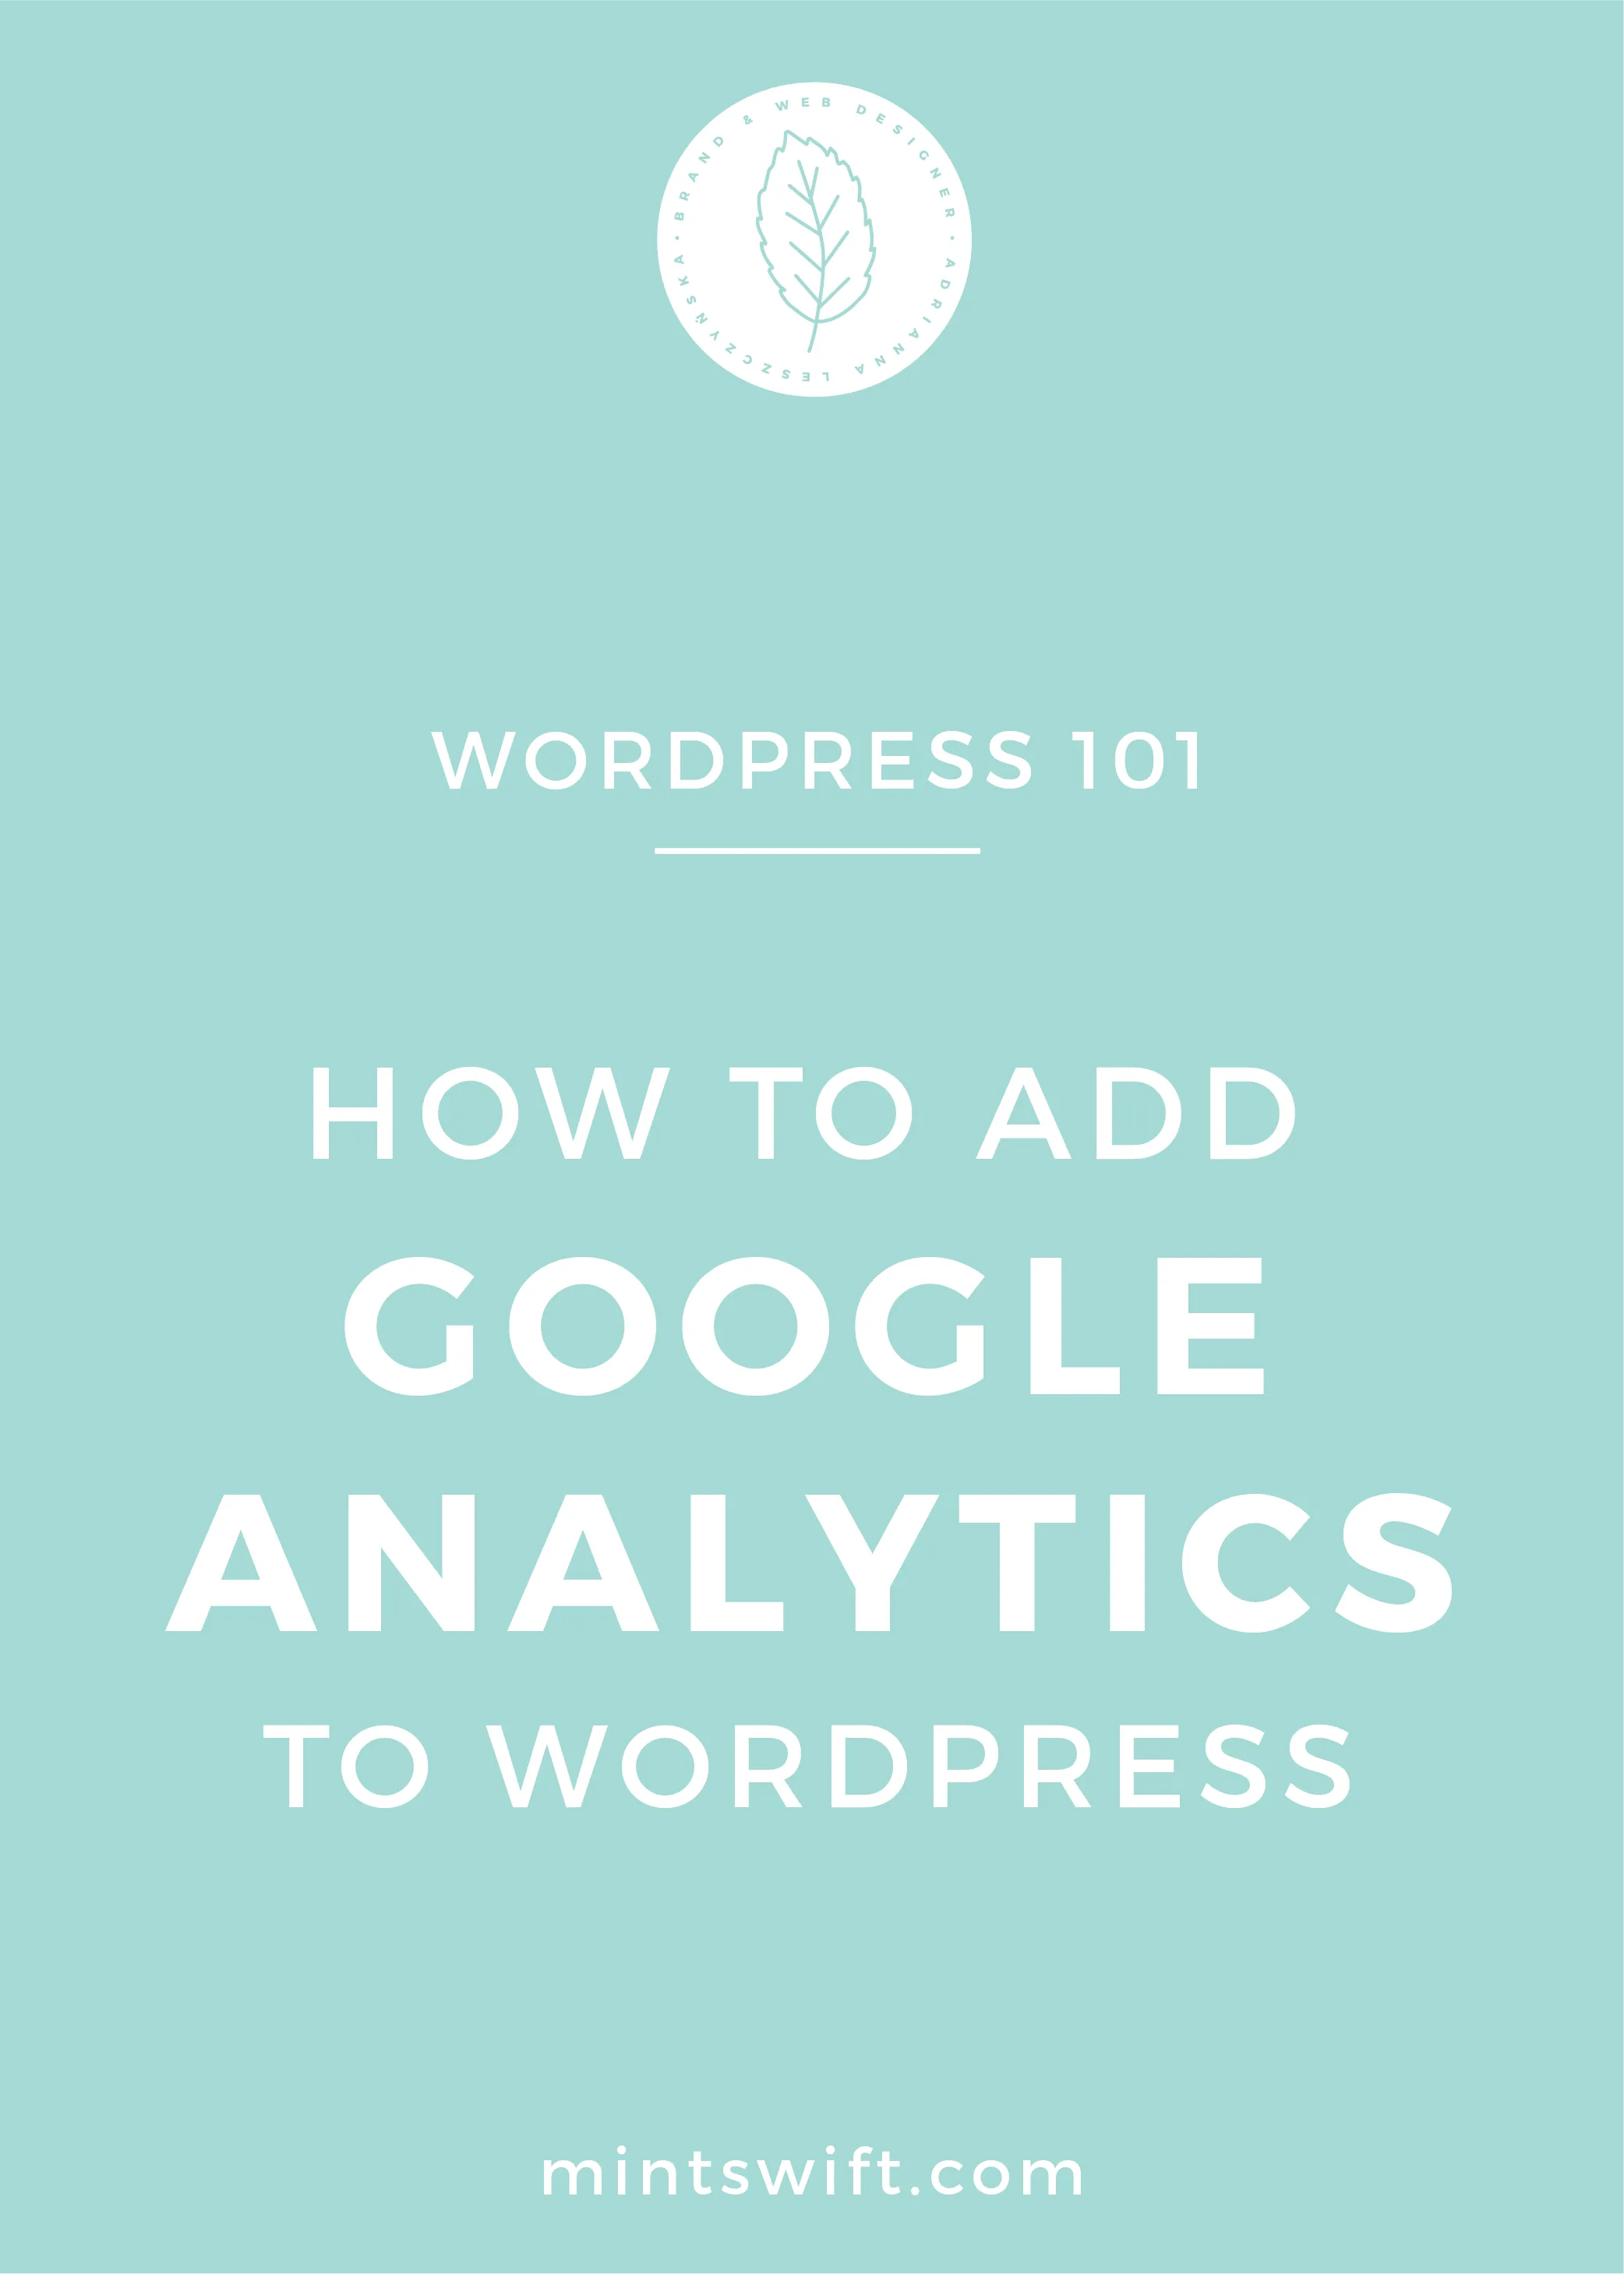 How to Add Google Analytics to WordPress - MintSwift